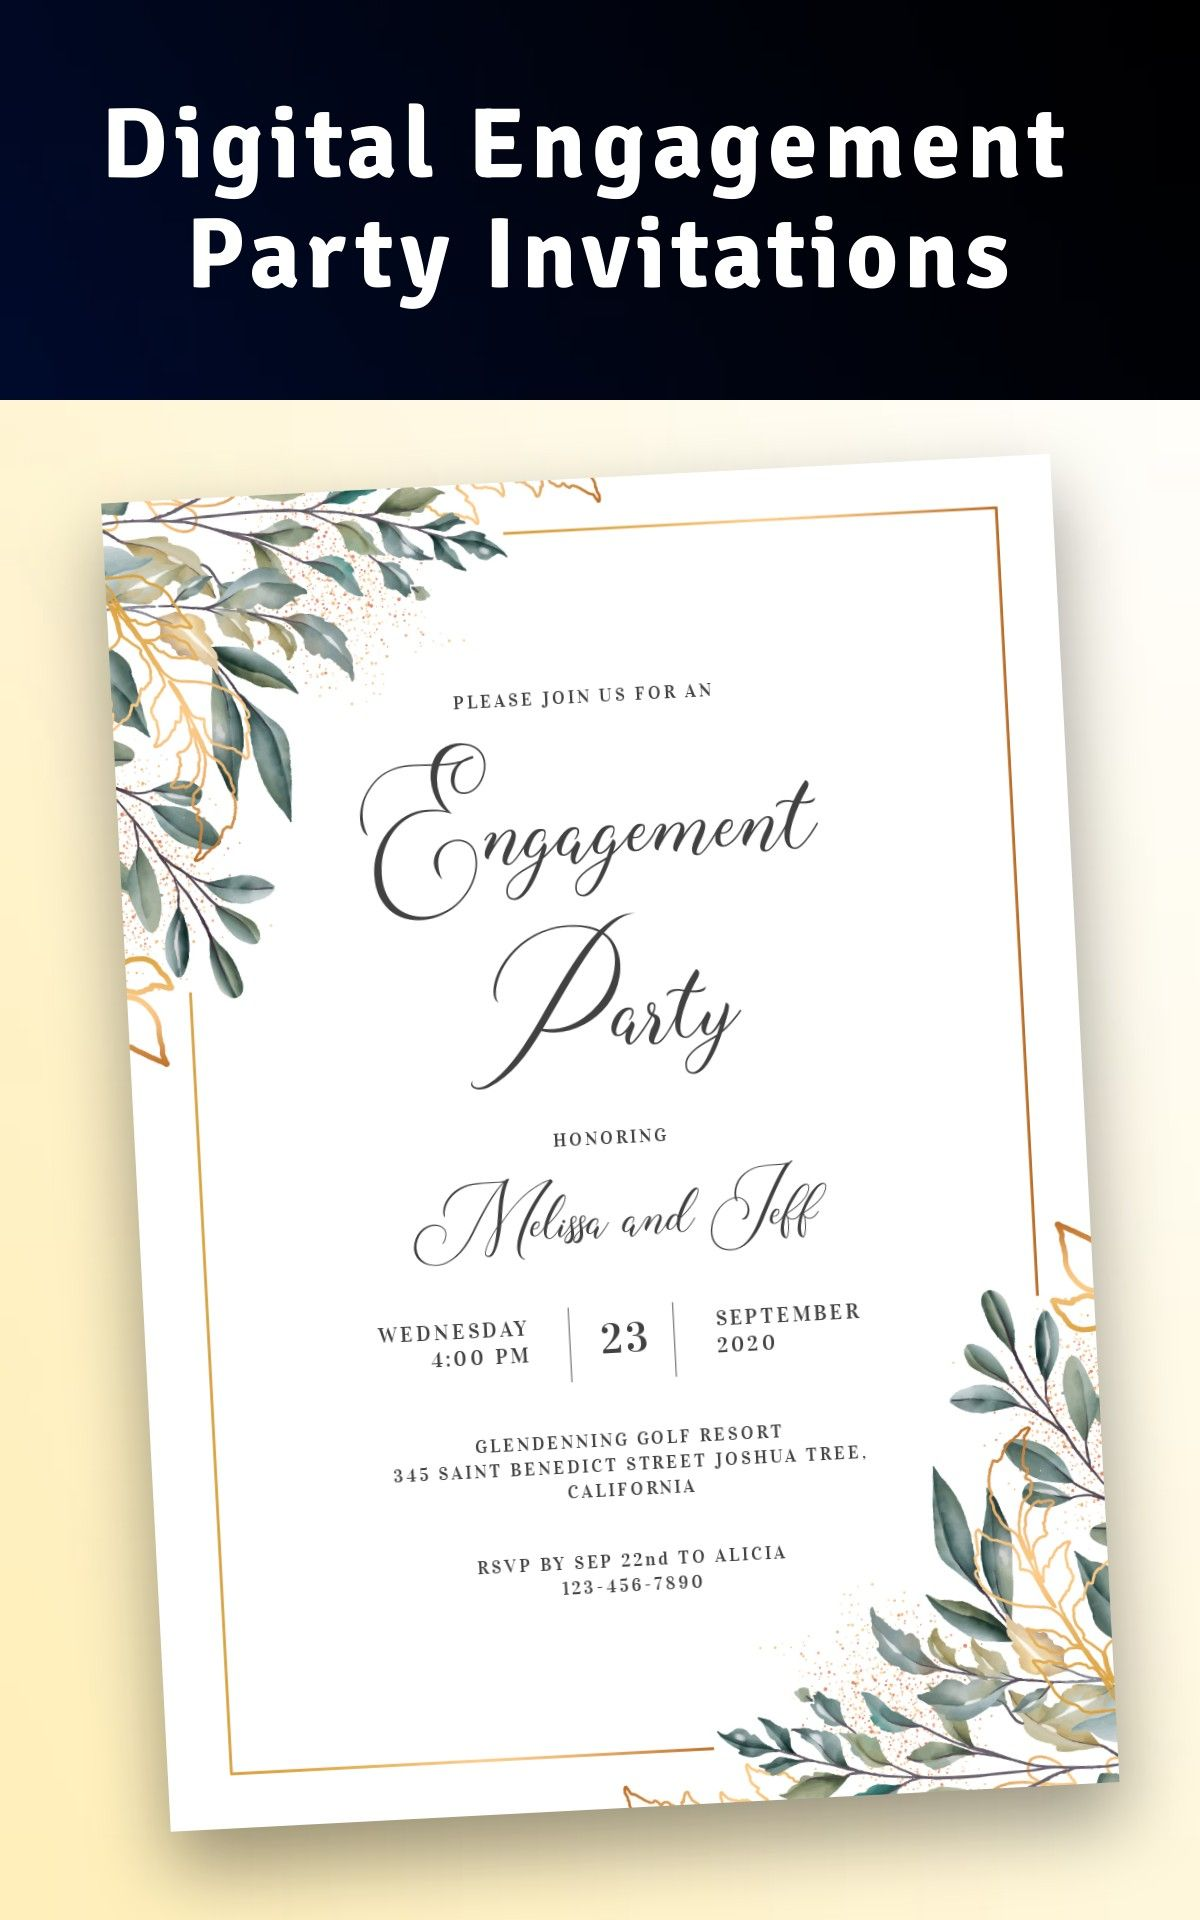 Digital Engagement Party Invitations Create Beautiful Invitations Online Engagement Party Invitations Engagement Party Invitations Engagement Party Cards